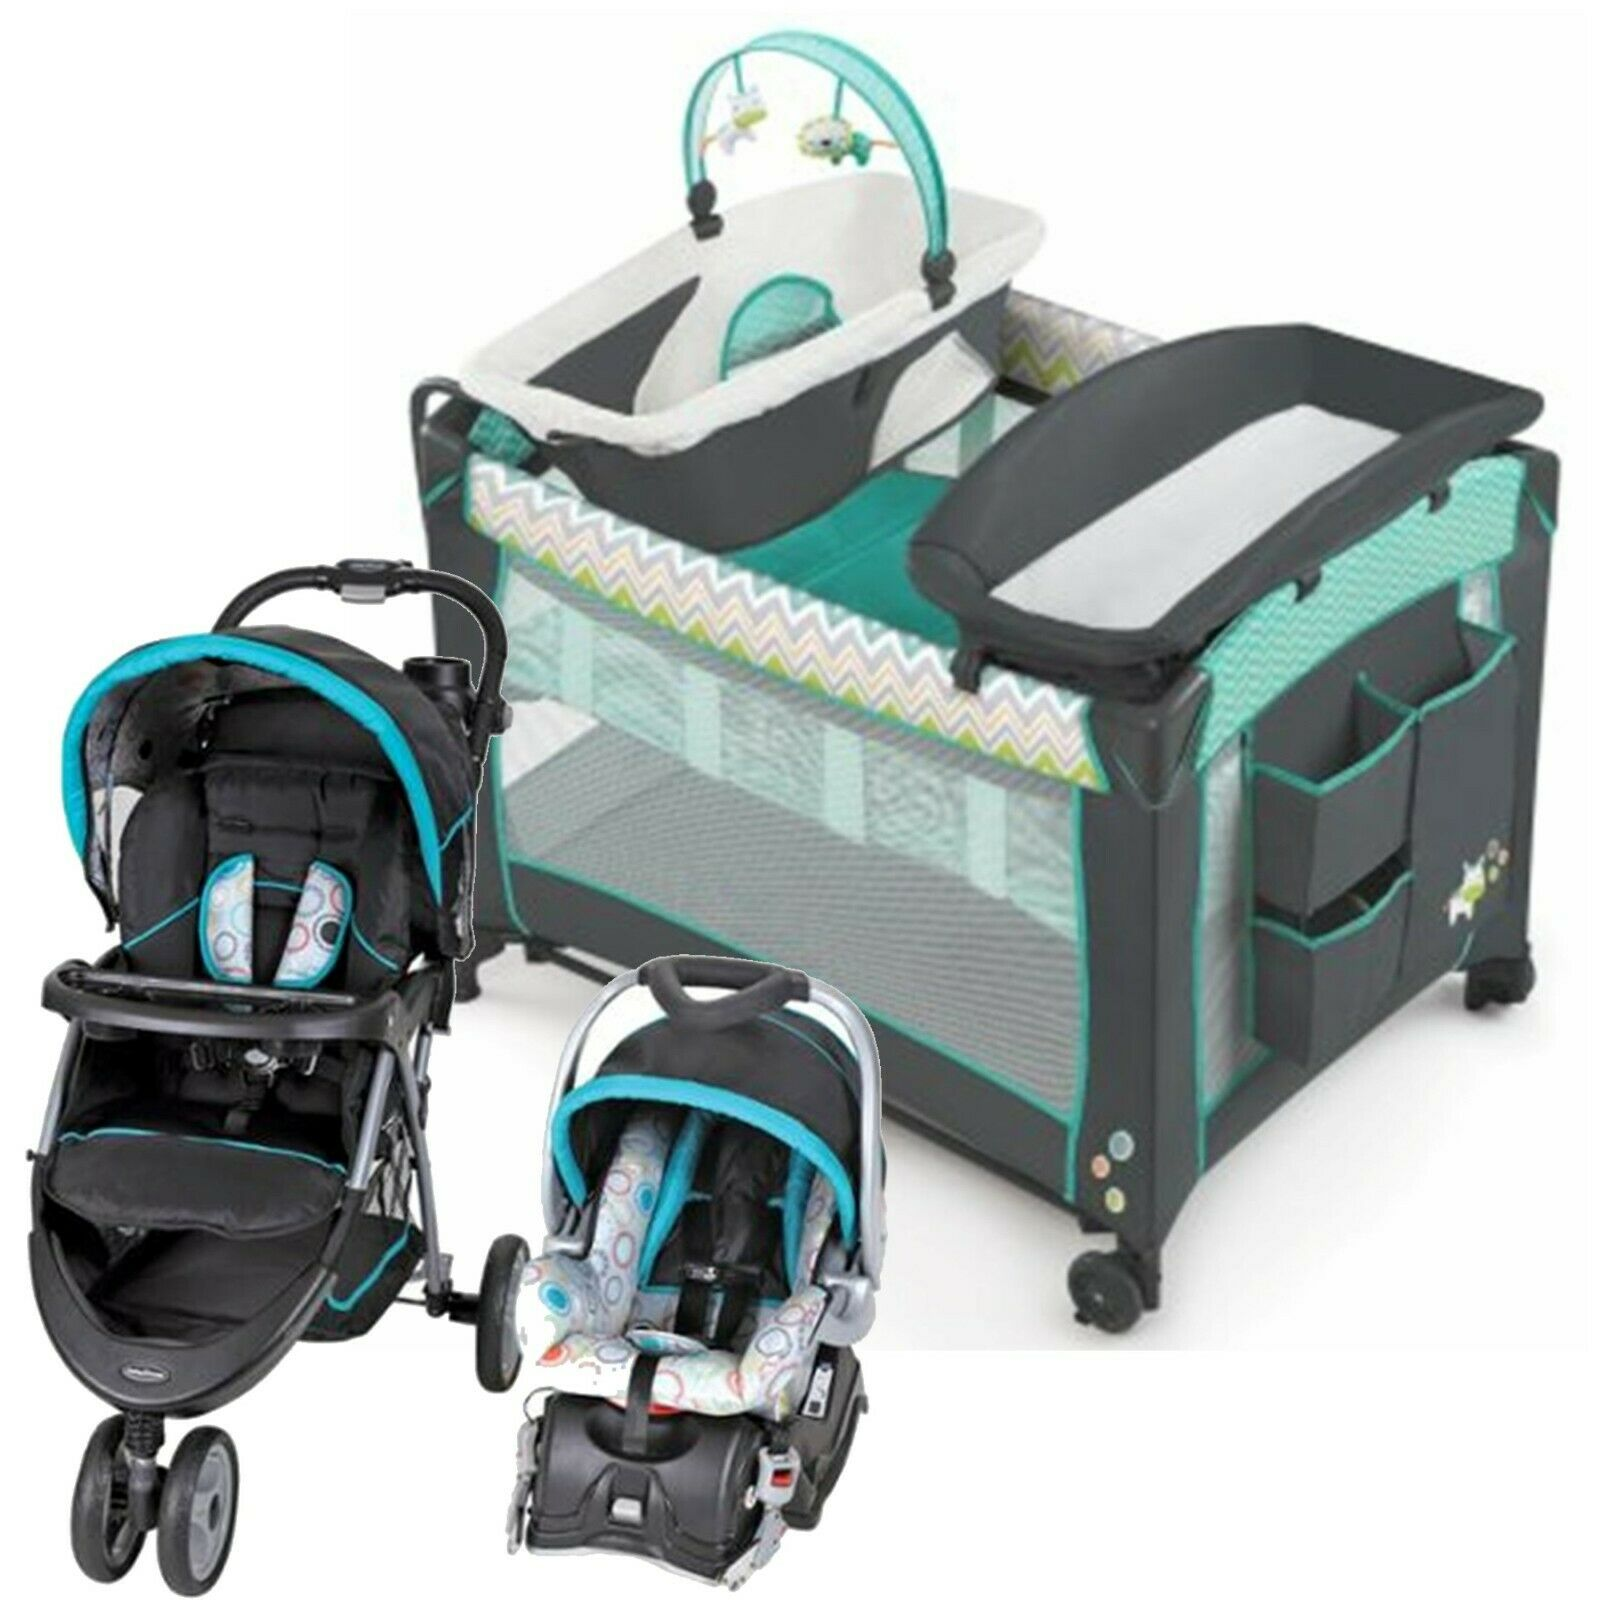 Baby Stroller with Car Seat Infant Playard Travel System Jog